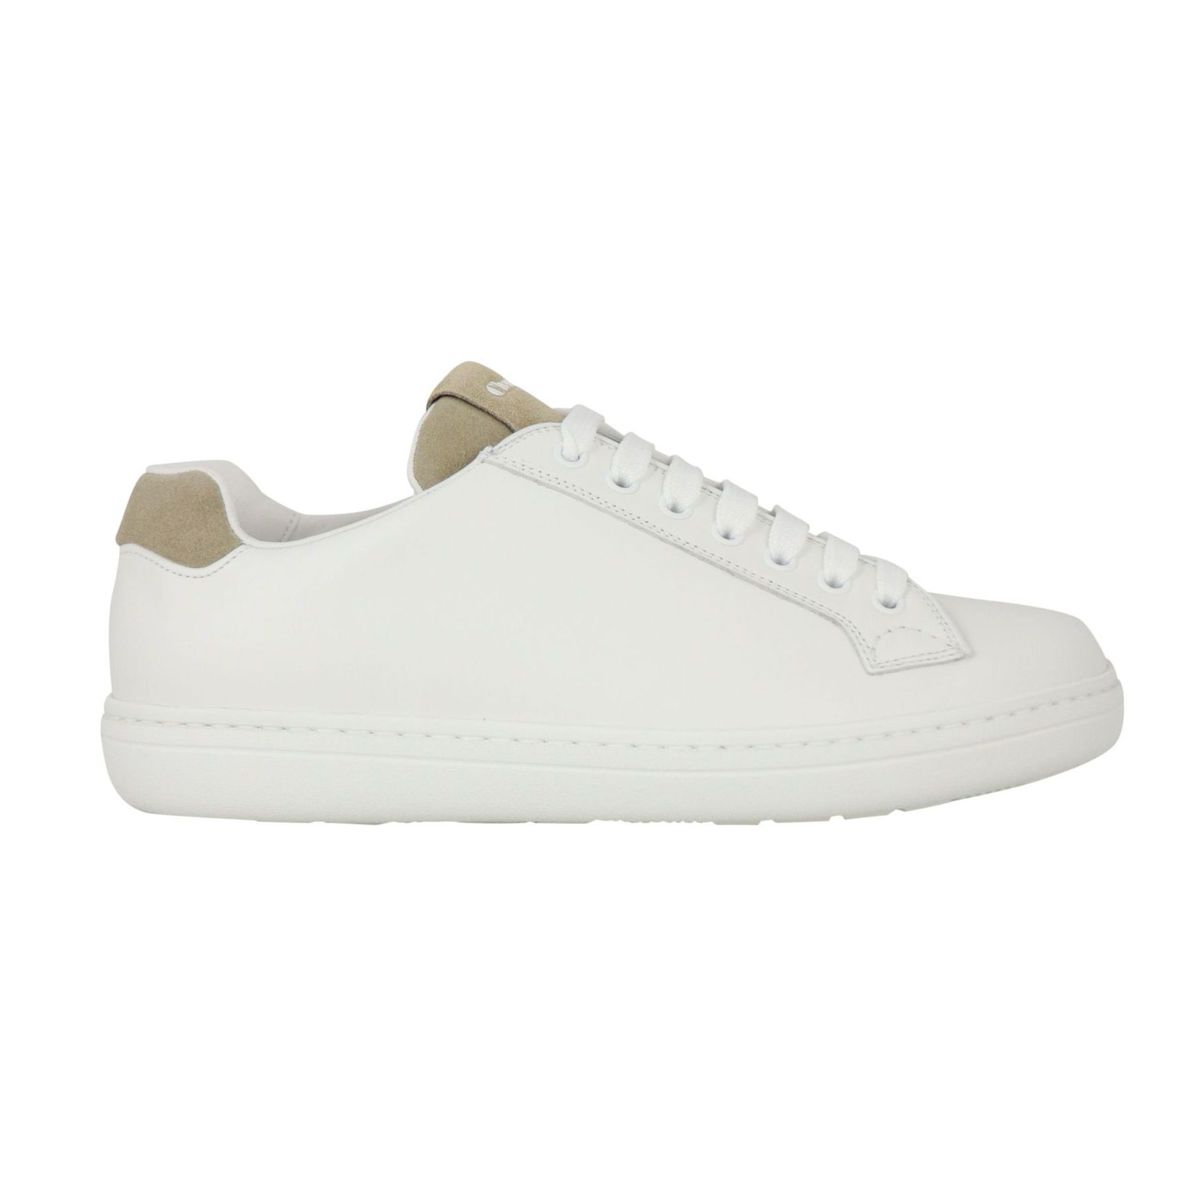 Boland Plus sneakers in leather with suede tongue White / taupe Church's